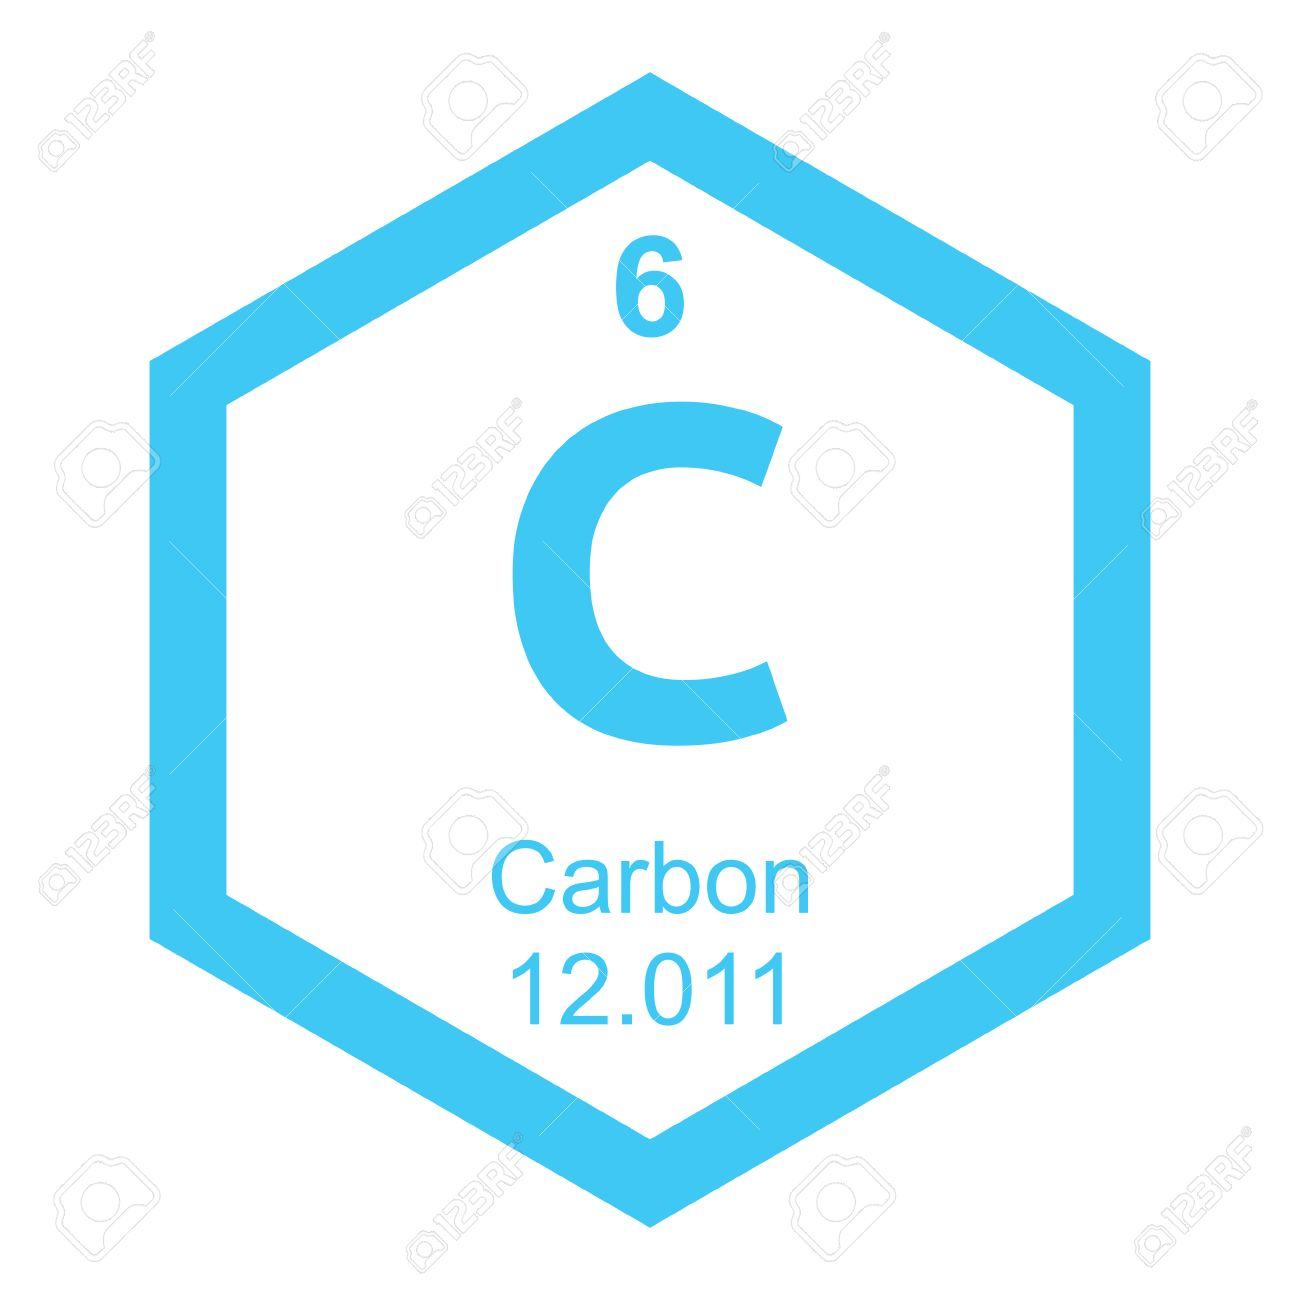 Periodic table of carbon gallery gantt chart access carbon periodic table symbol images periodic table images 41261537 periodic table carbon stock vector carbon carbon gamestrikefo Gallery